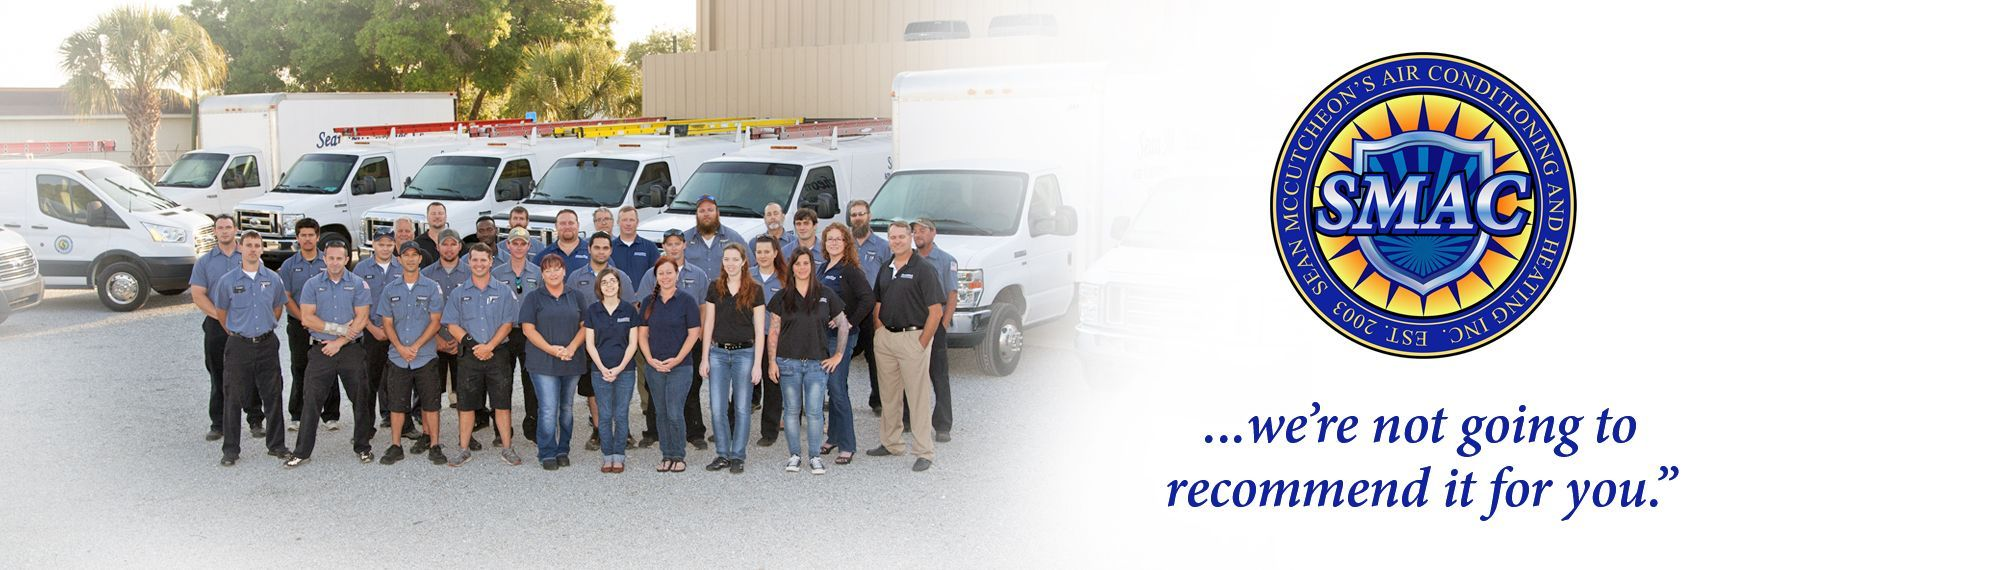 Sean McCutcheon's Air Conditioning and Heating Sarasota best Service